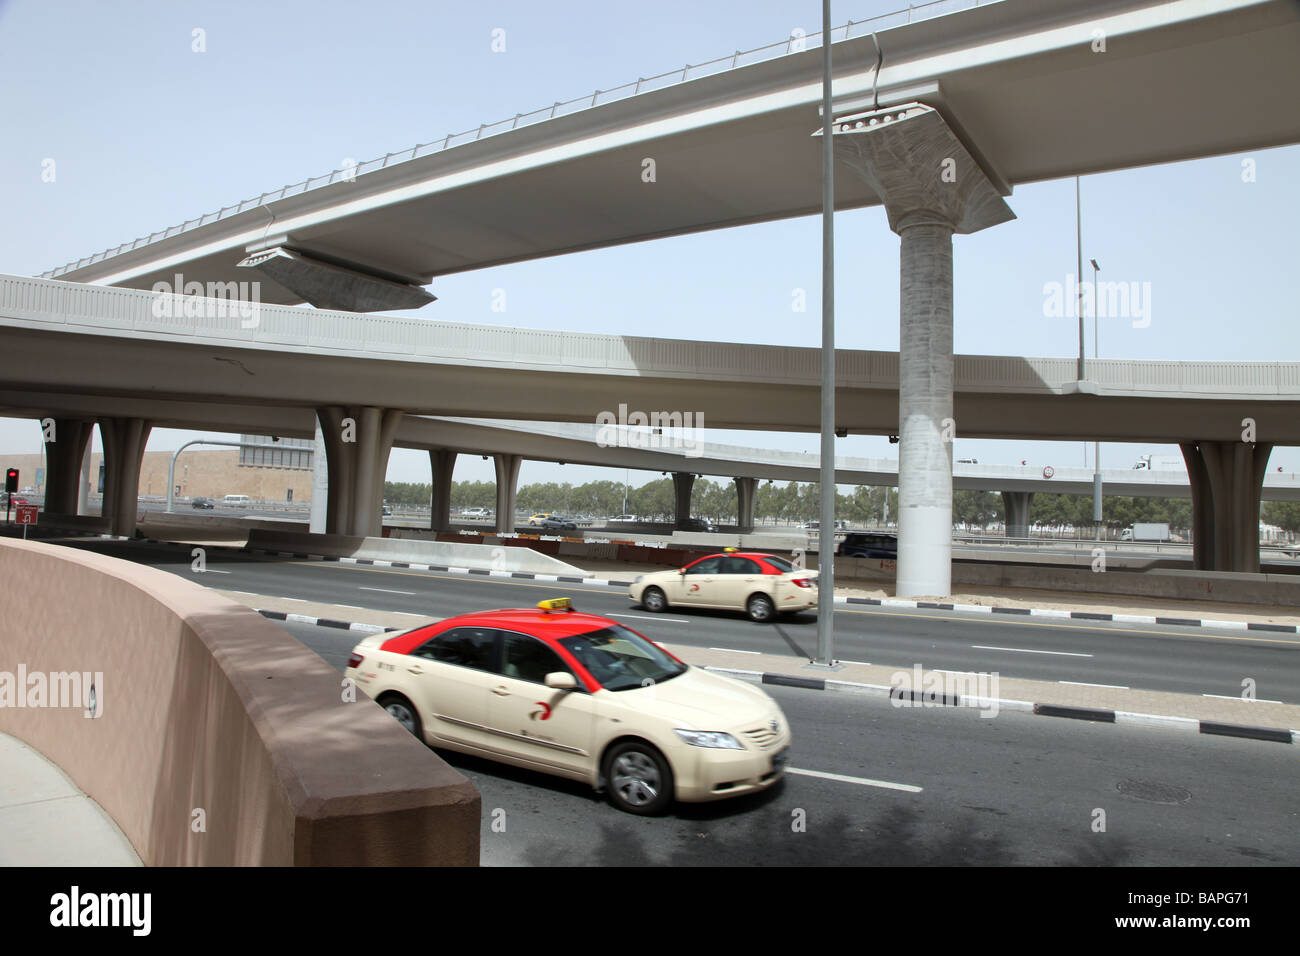 Highways of Dubai city centre United Arab Emirates - Stock Image